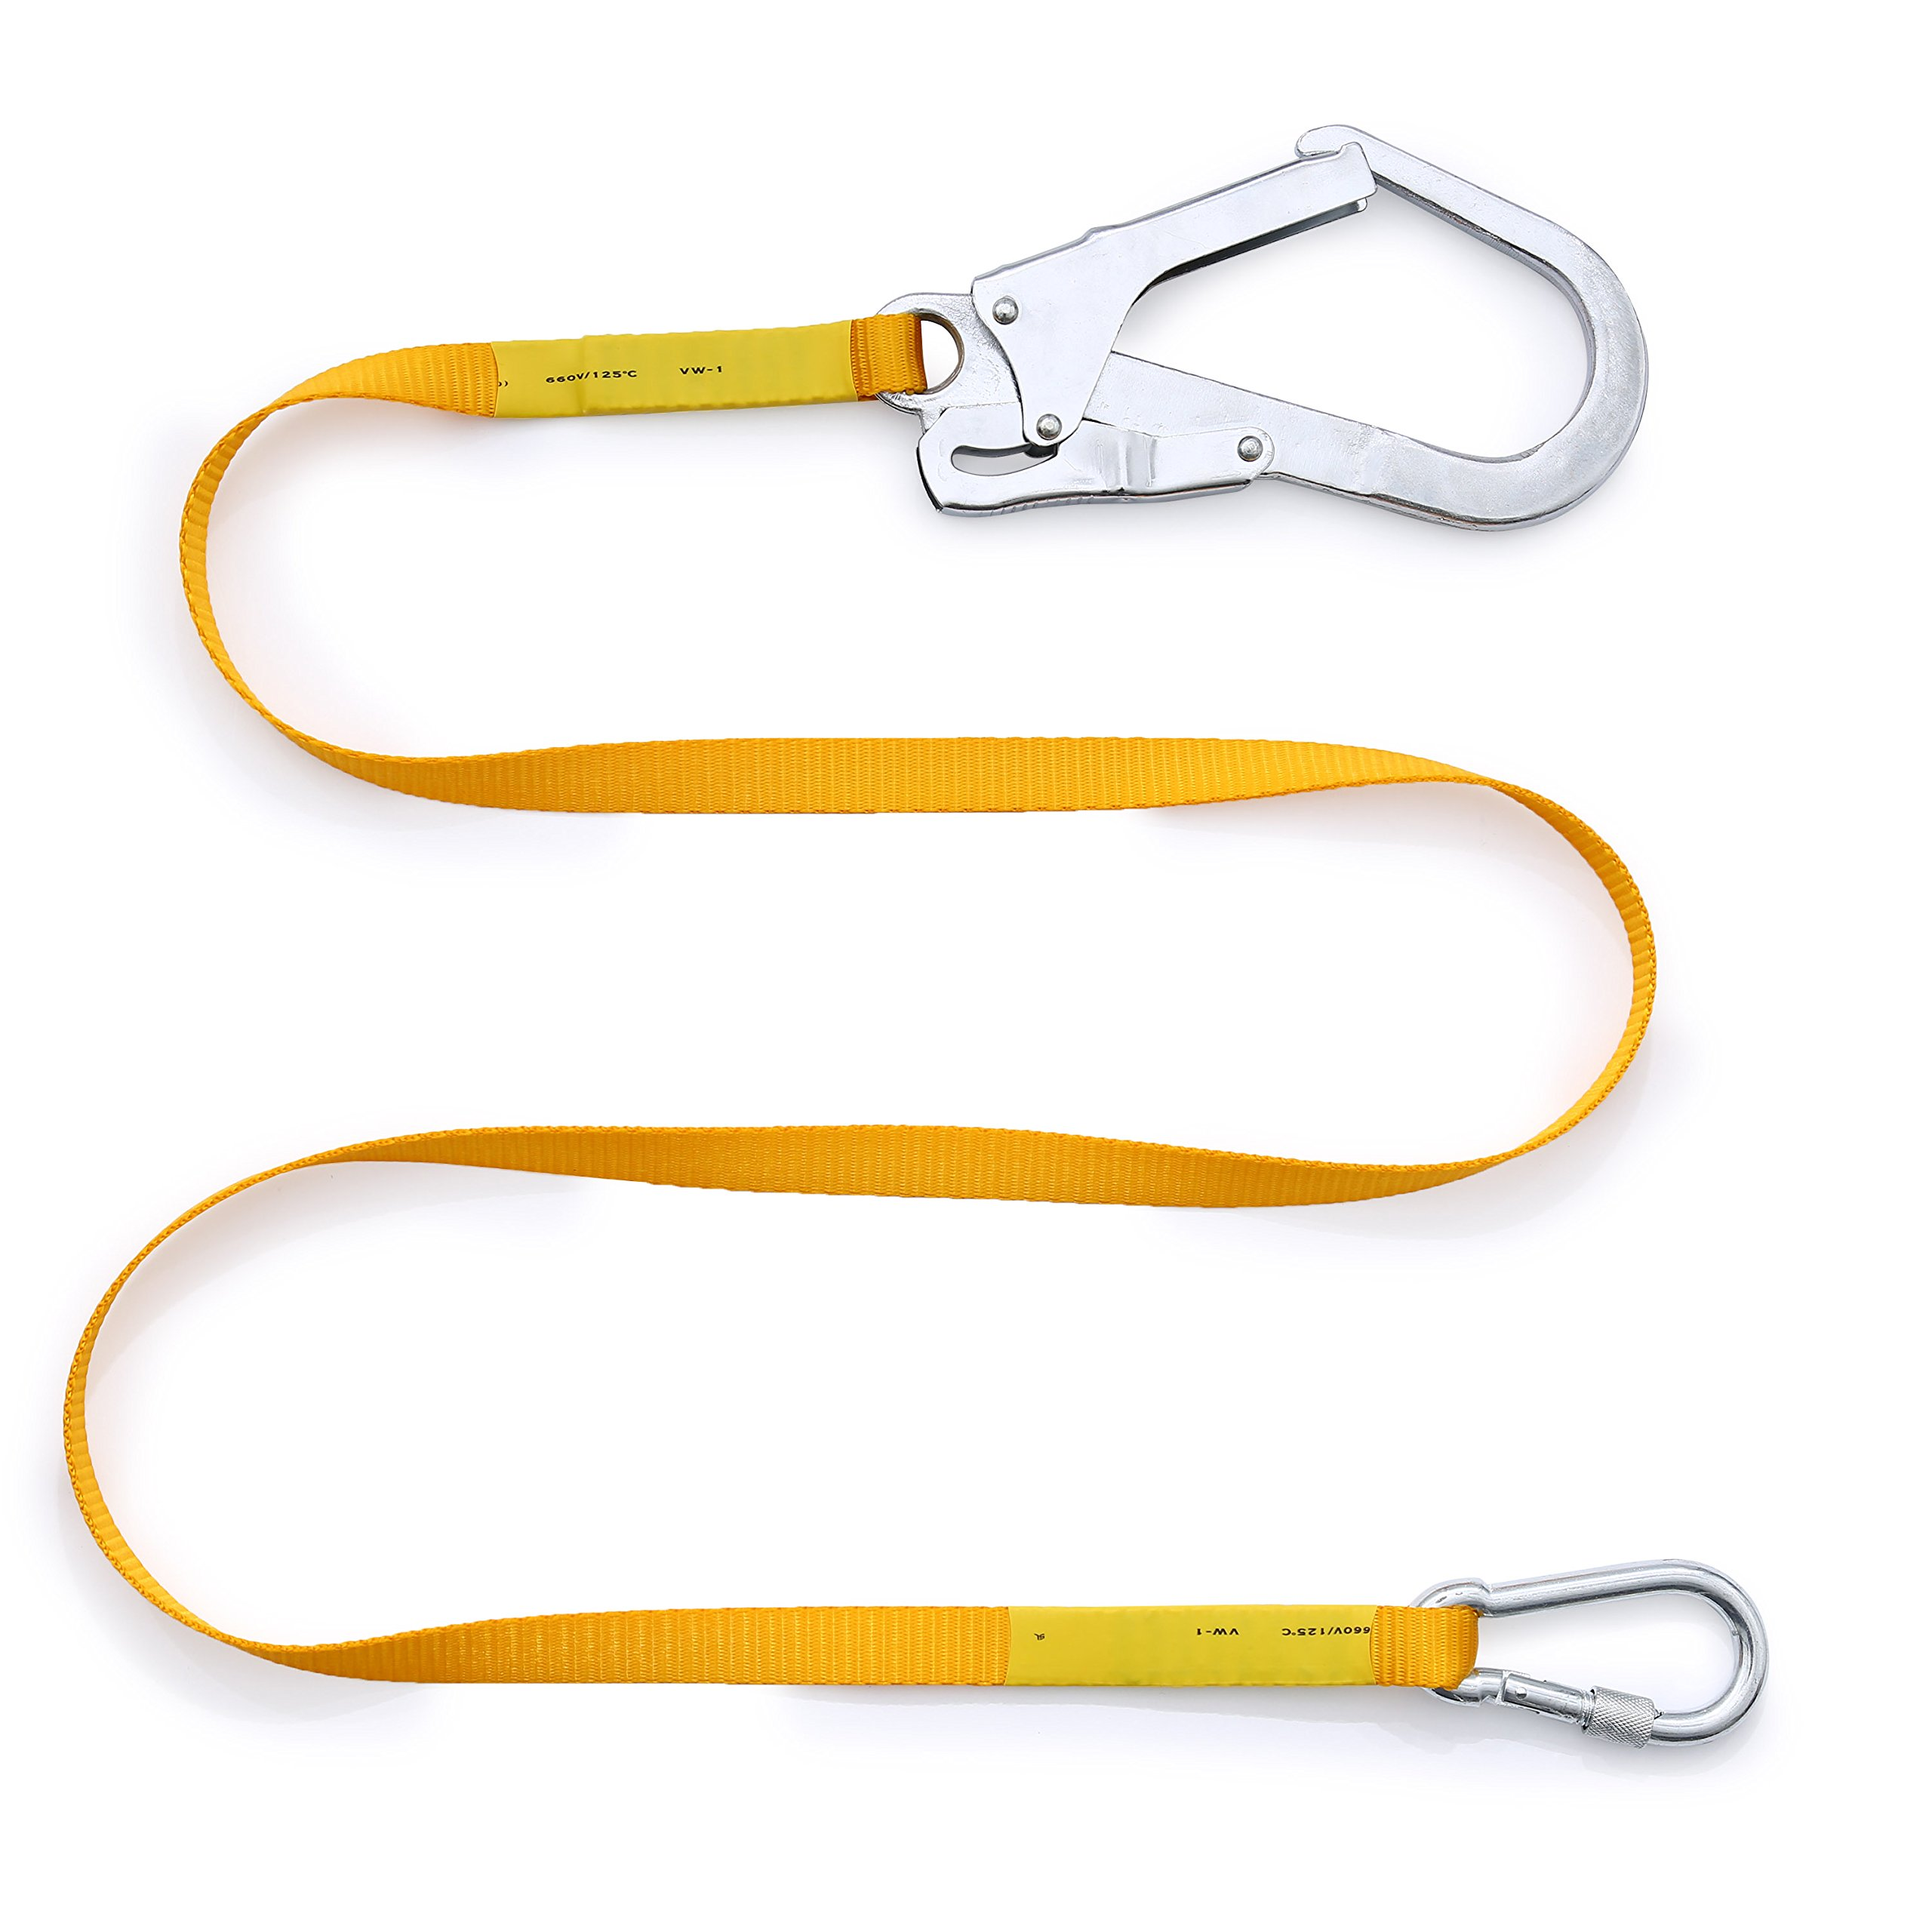 Safety Lanyard,Outdoor Climbing Harness Belt Lanyard Fall Protection Rope with Large Snap Hooks, Carabineer